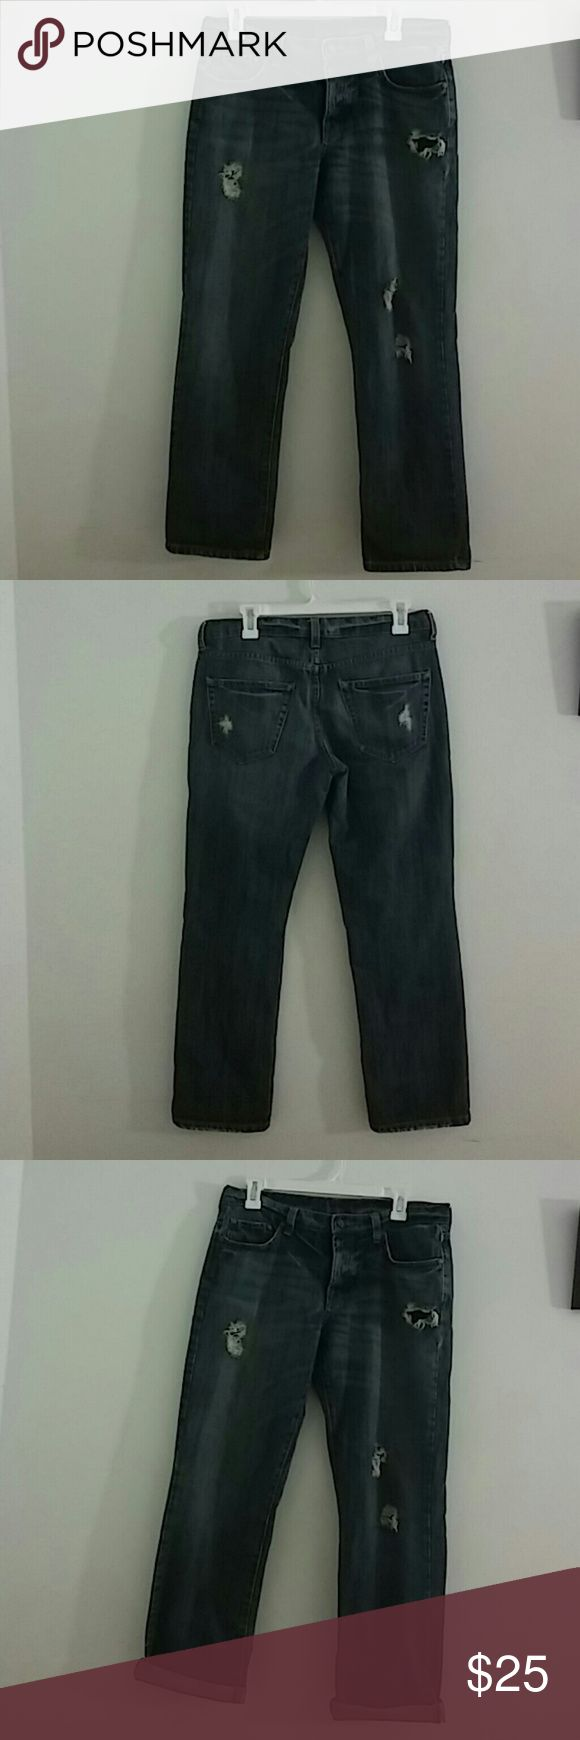 Era of chaos women capri cropped destroyed jeans Era of chaos women capri cropped destroyed jeans sz 27 Jeans Ankle & Cropped